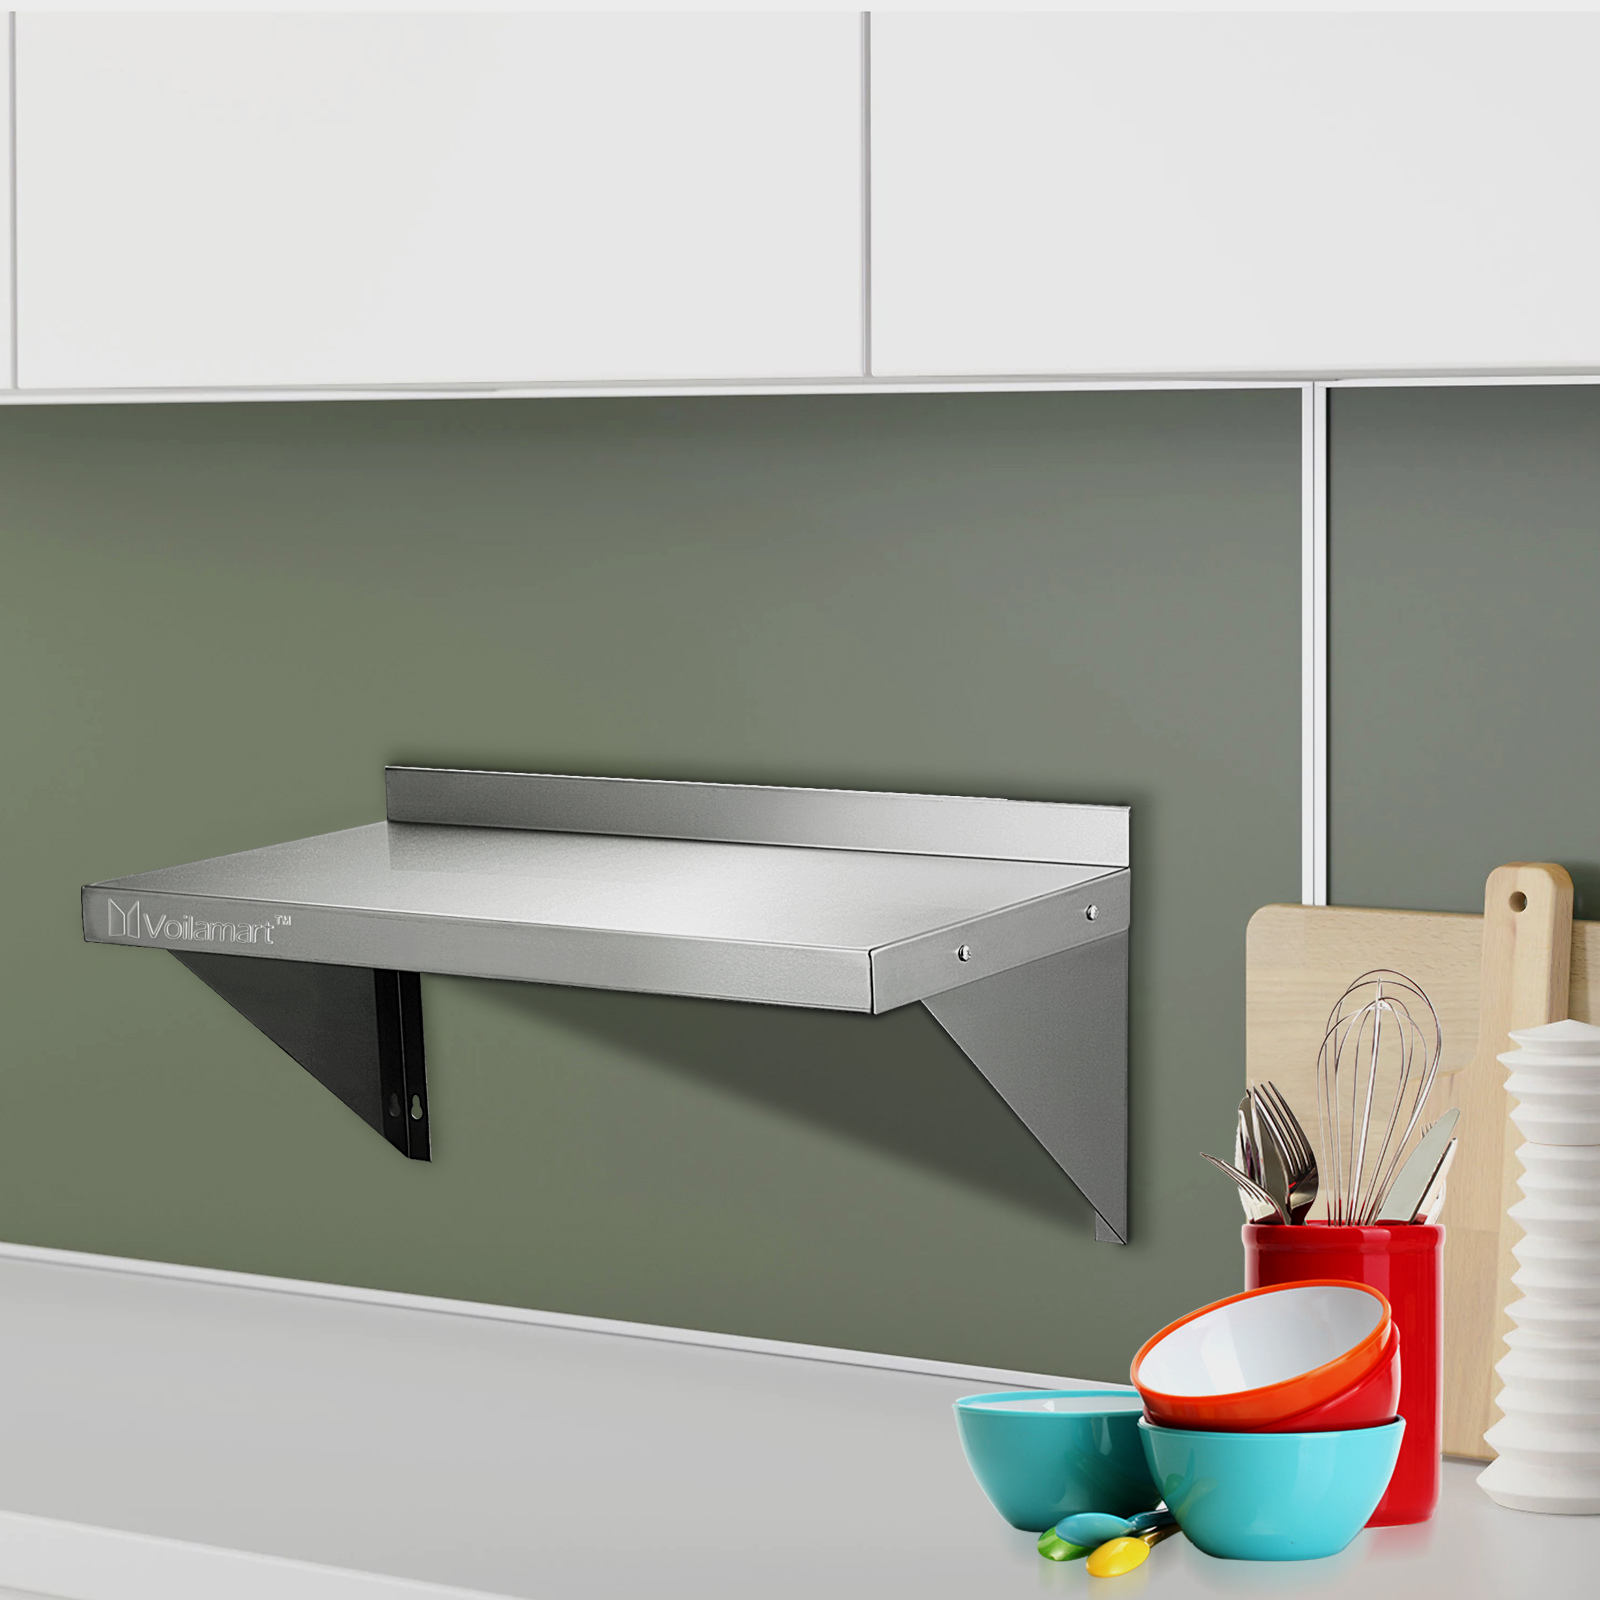 kitchen wall shelf what is the average cost of a remodel 600mm commercial stainless steel 24 quot x 12